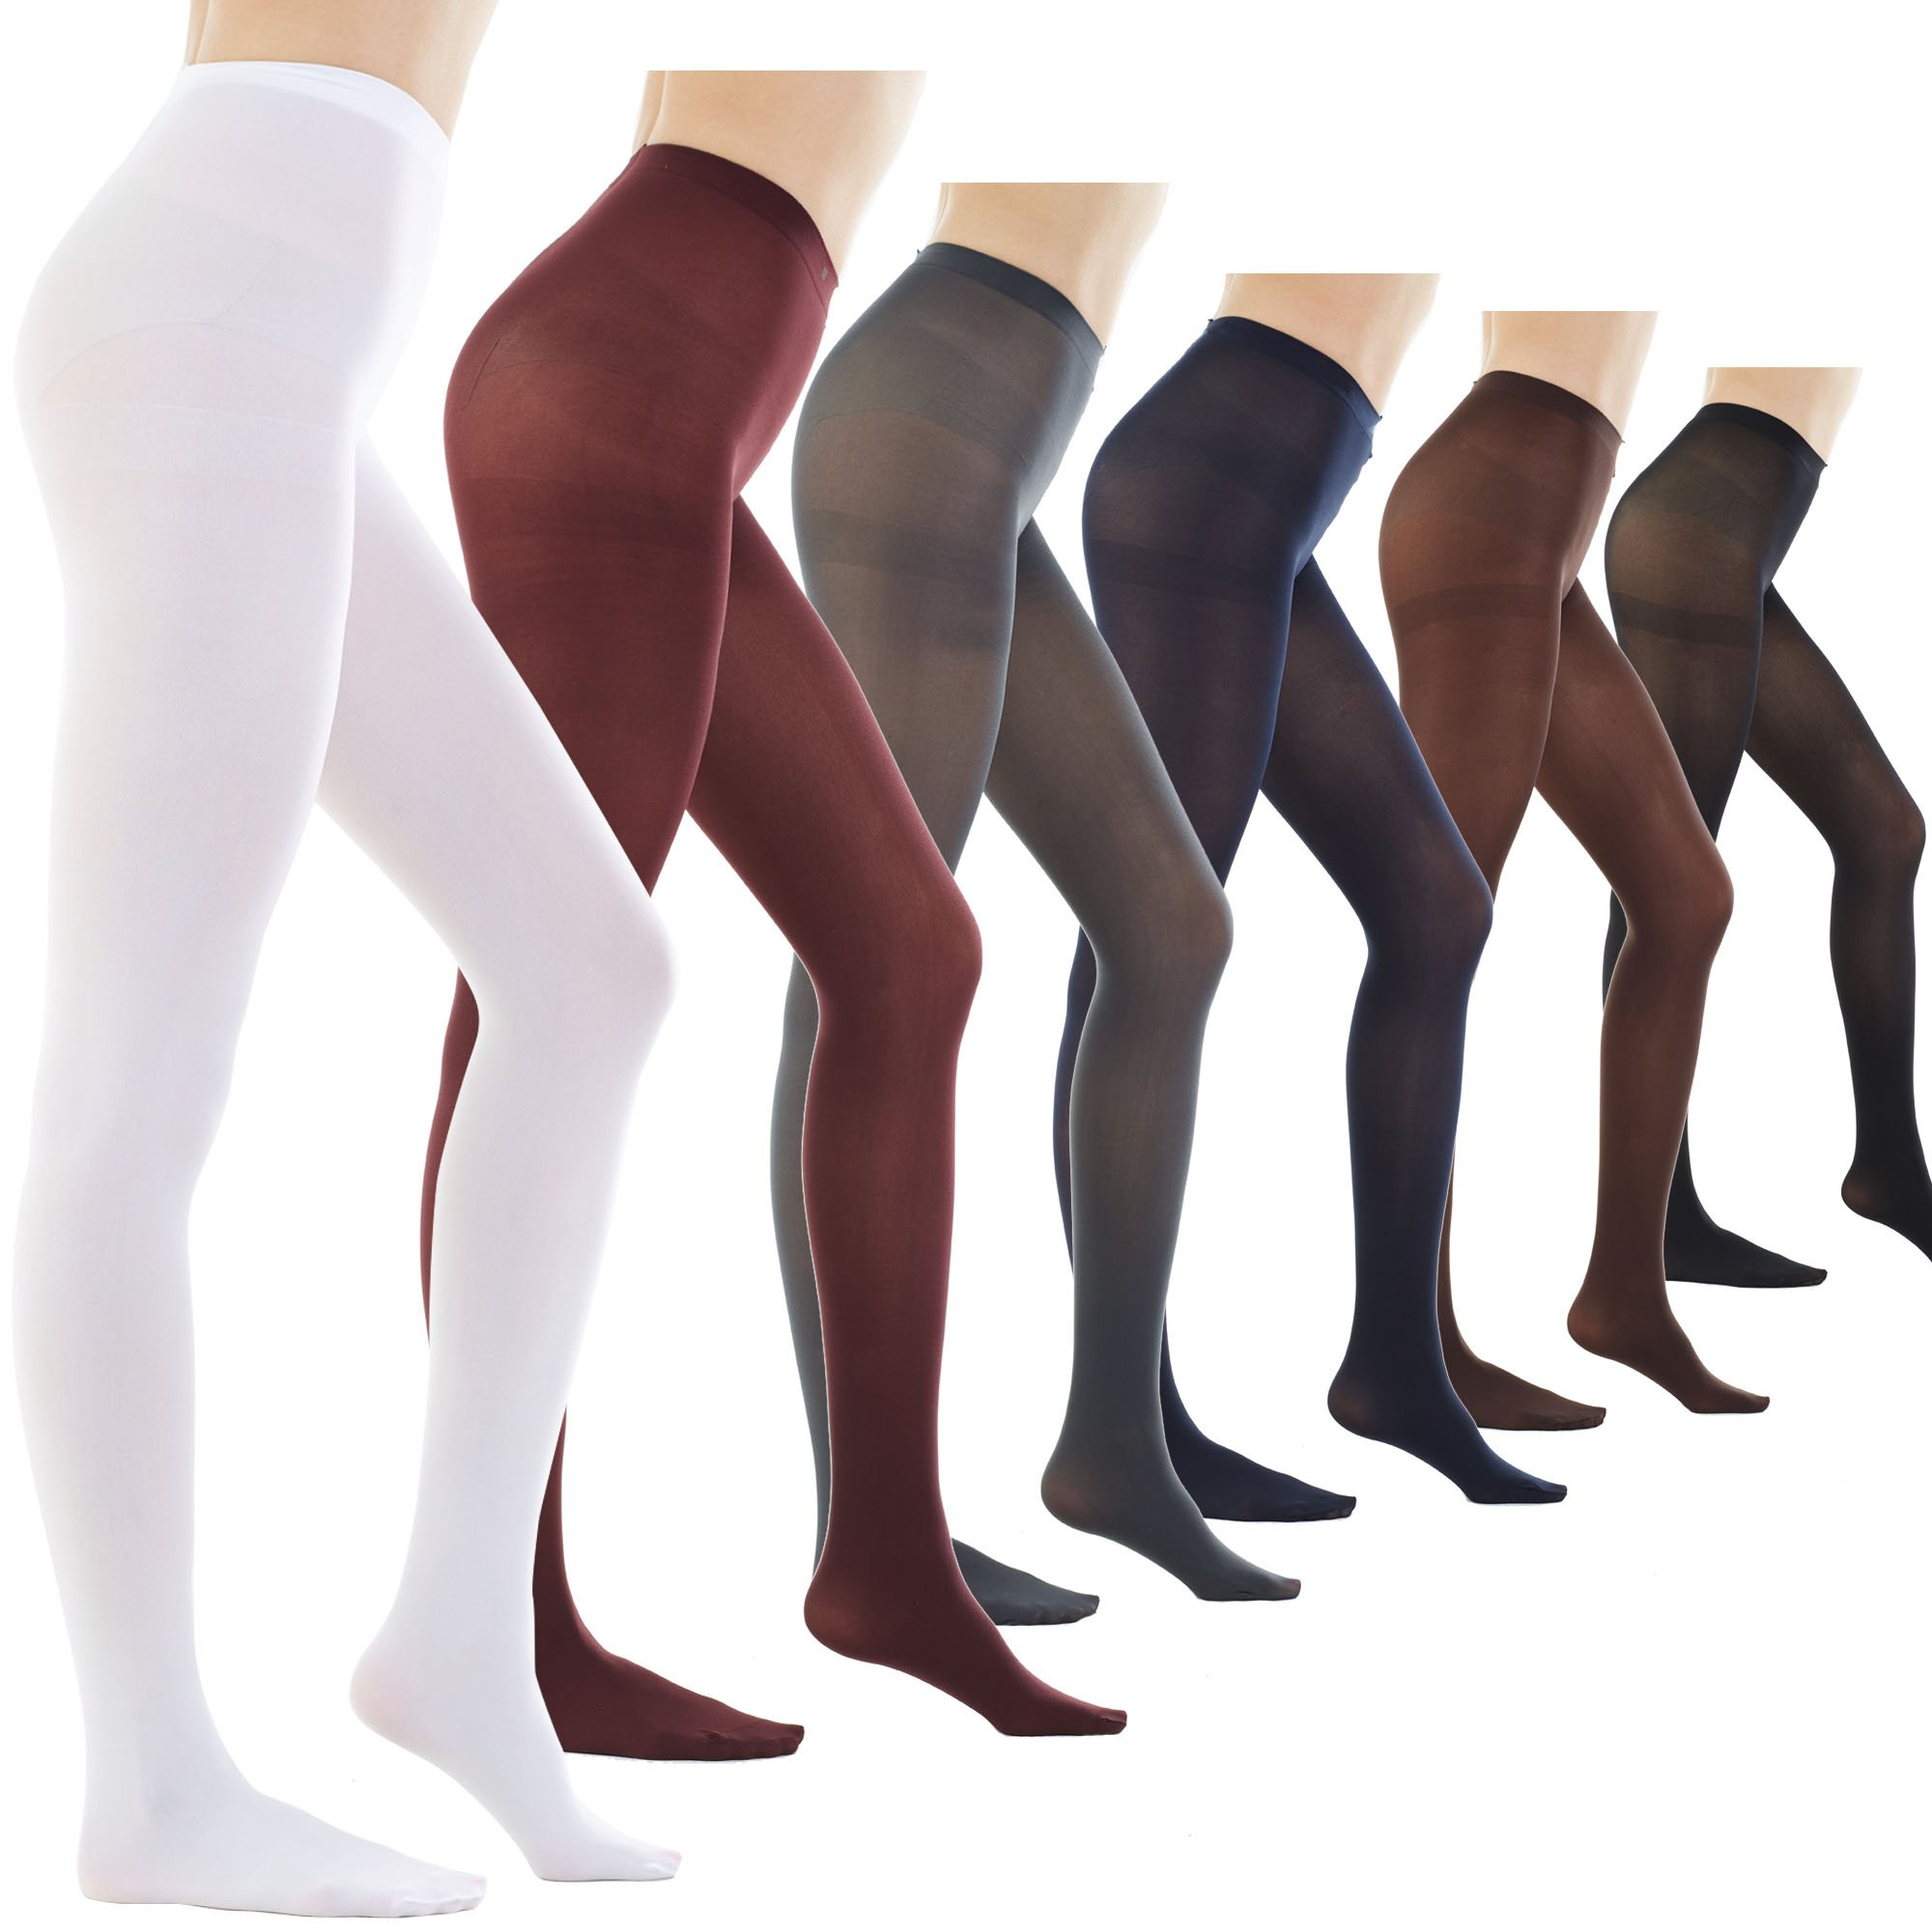 STYLEGAGA Women's 80 Denier Semi Opaque Solid Color Footed Pantyhose Tights 2Pair or 6Pair (M/L, 6PAIR - Black/Darknavy/Darkgray/Brown/Maroon/White)